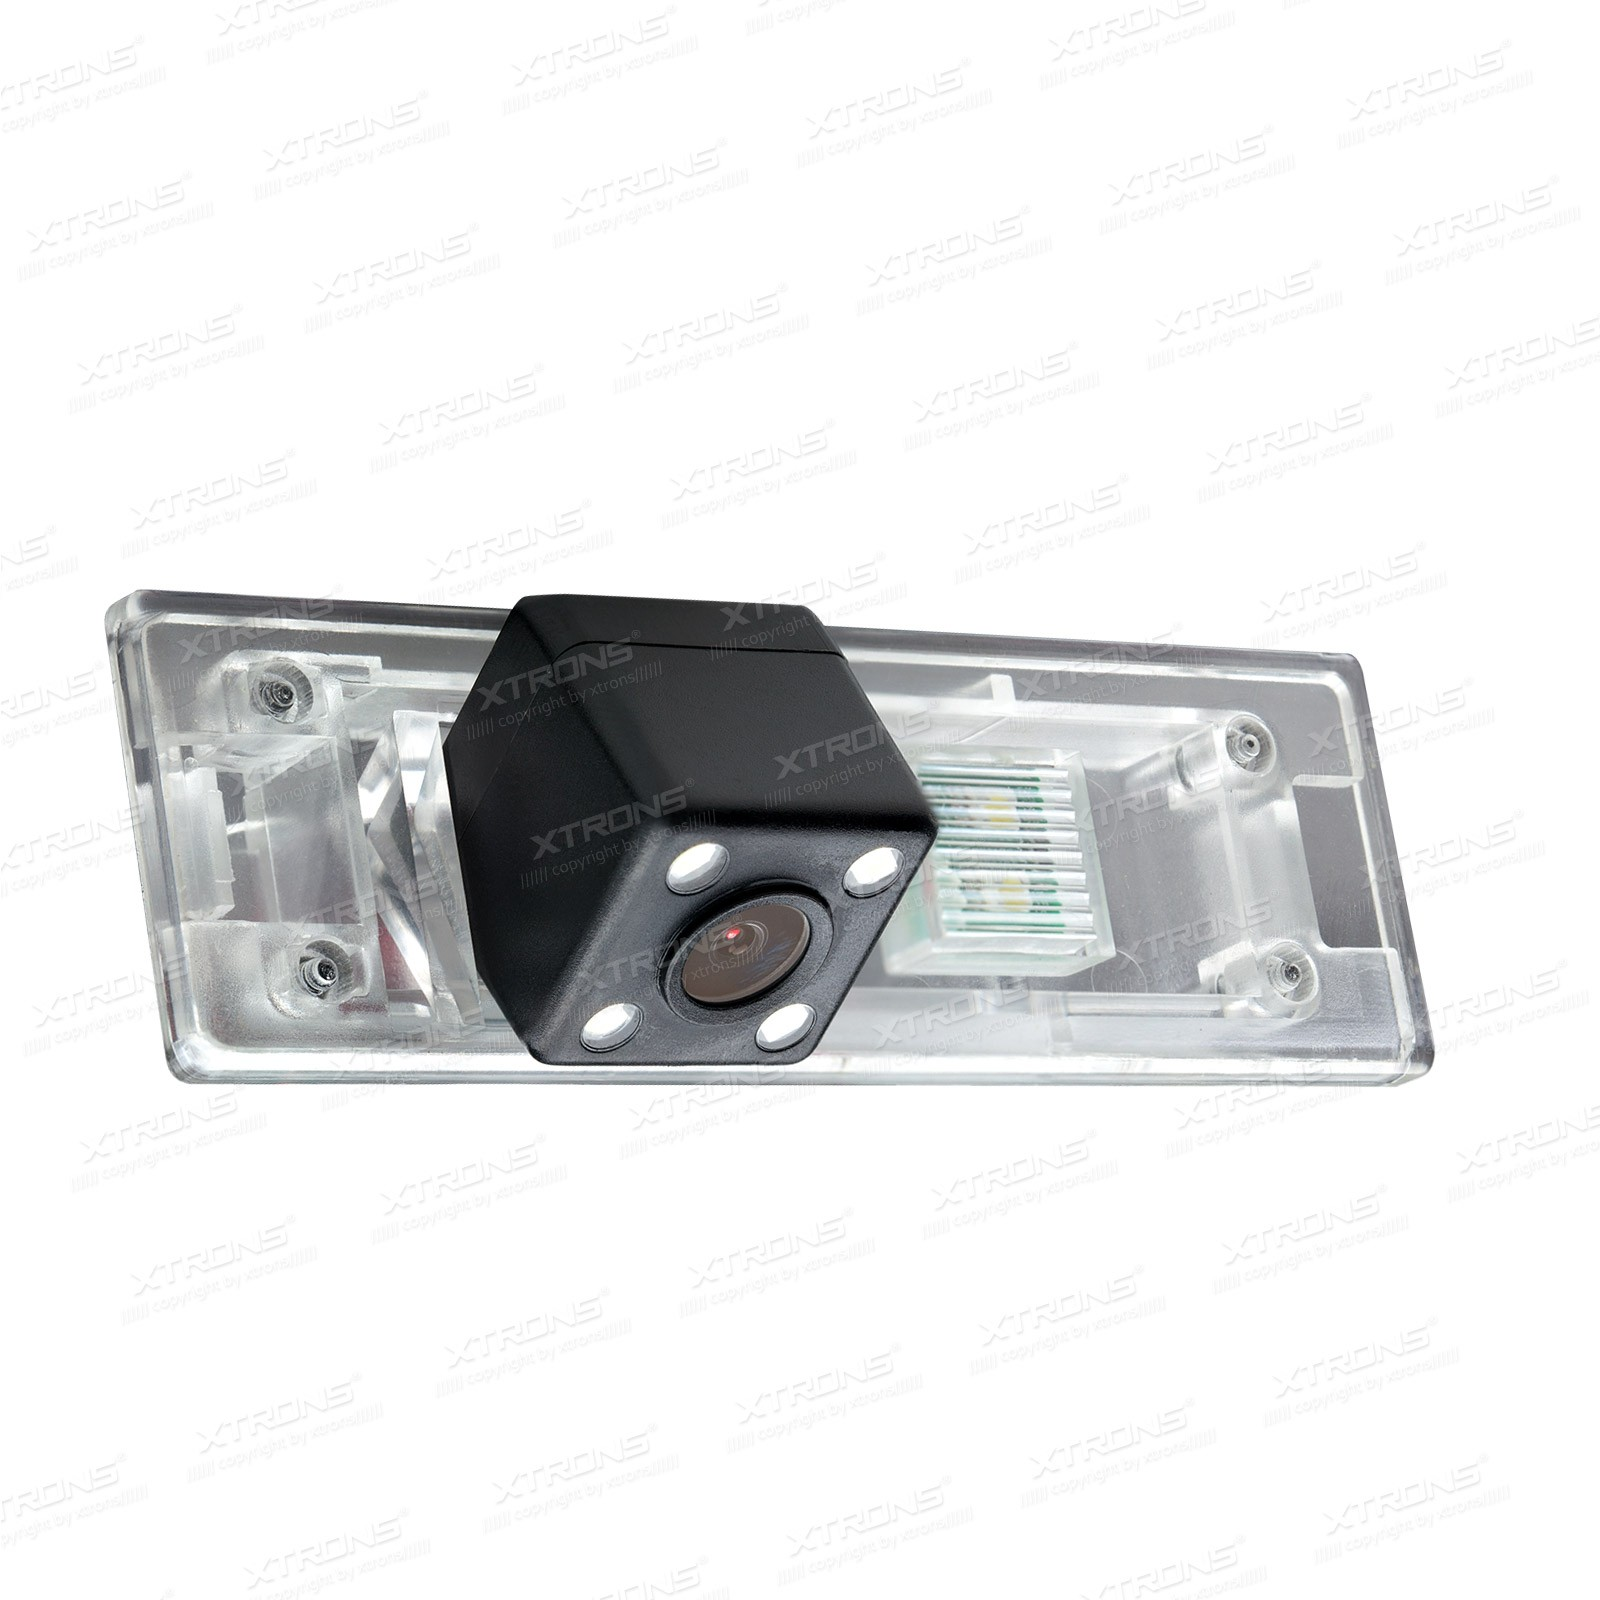 170° Wide Angle Lens Waterproof Reversing Camera Custom Fit for BMW 1 Series 120i